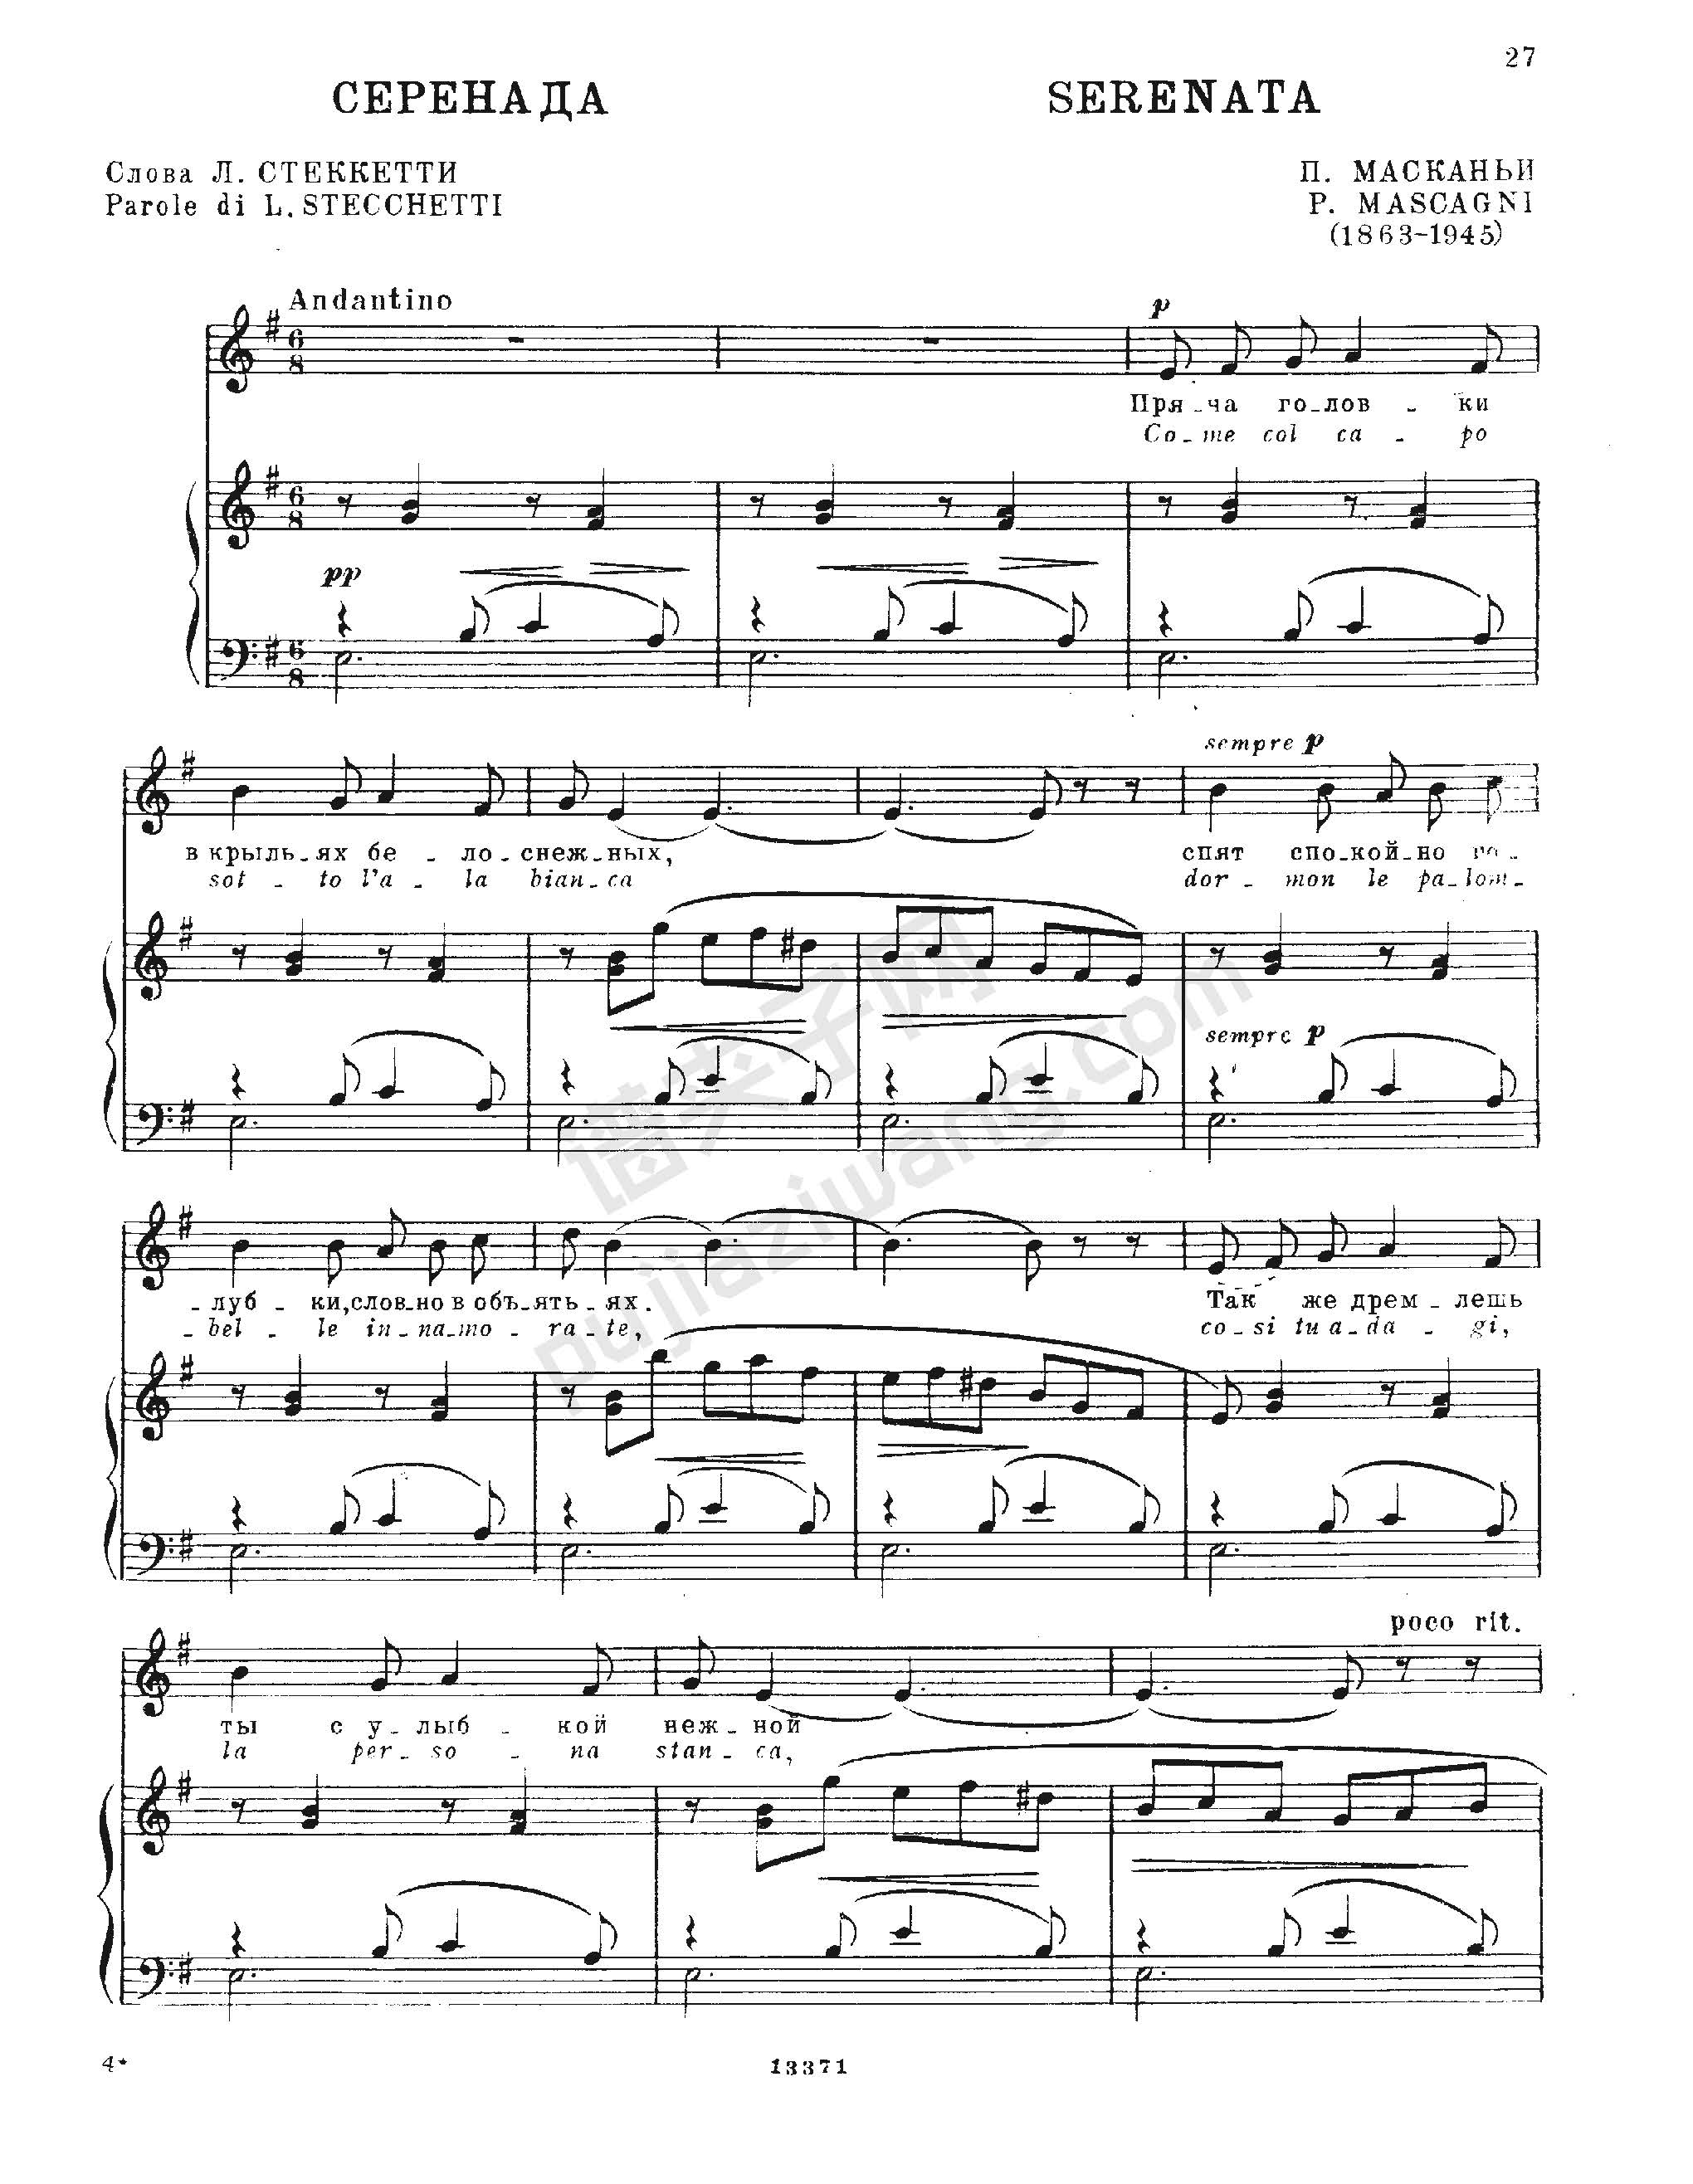 Pages from Mascagni - Serenata.jpg